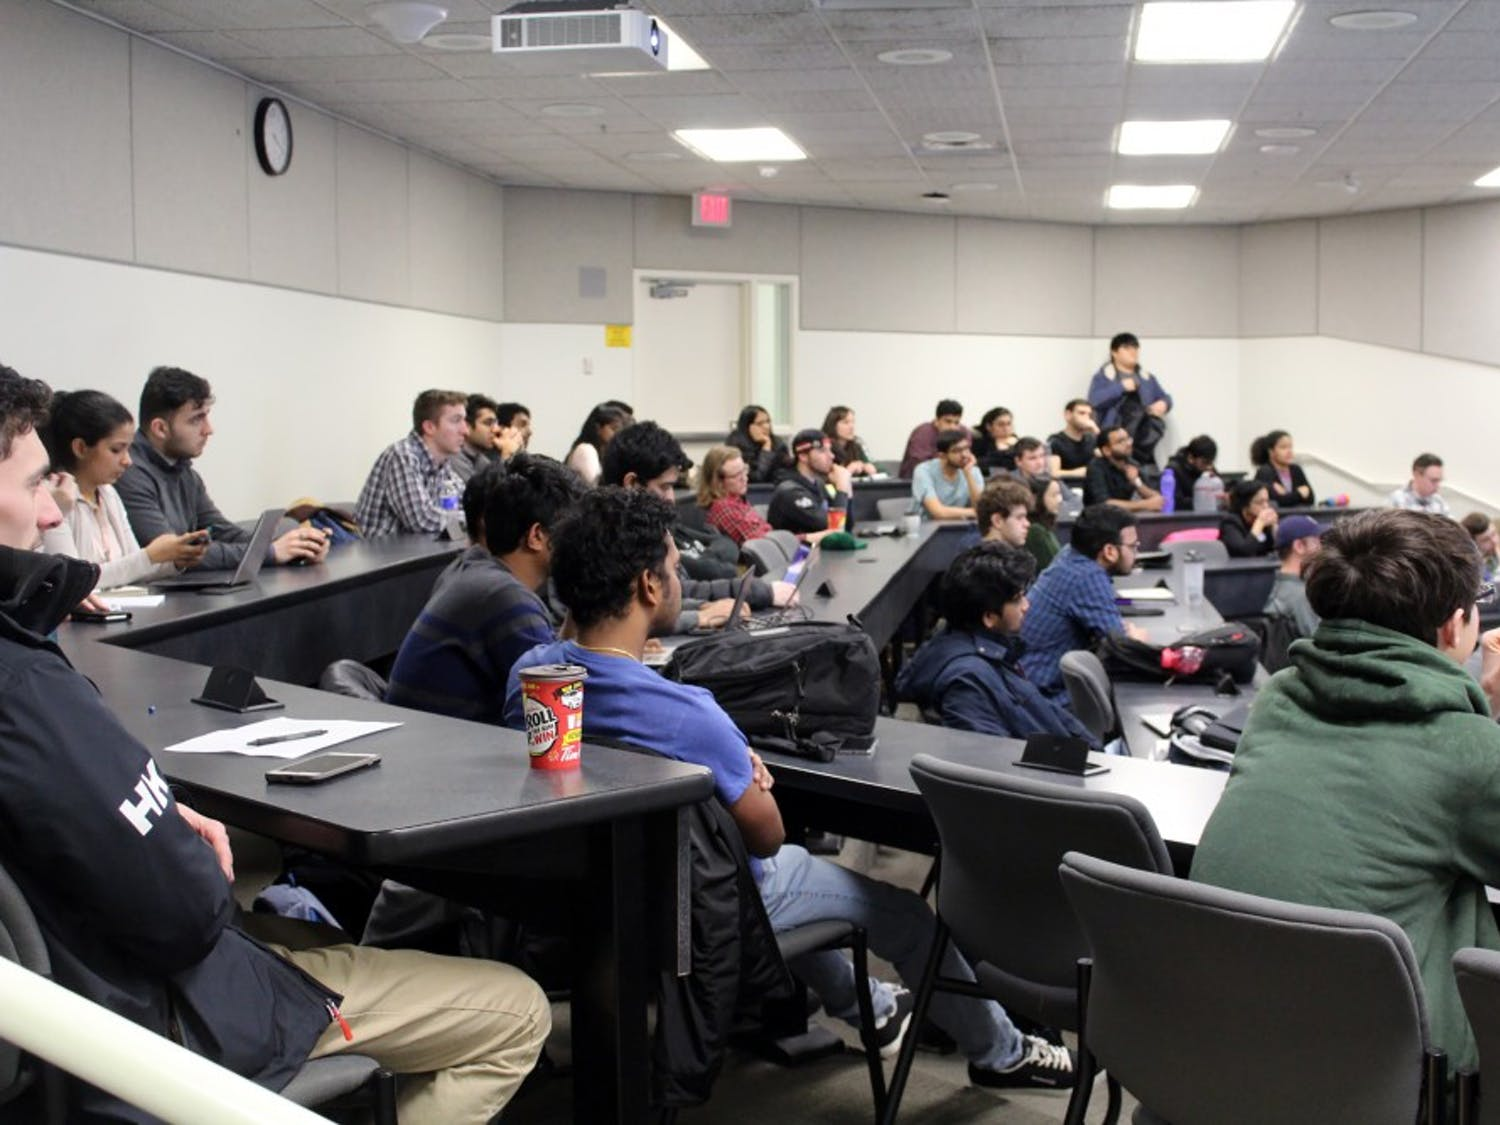 UB students forms new club on cryptocurrency and blockchain technology. Members discuss how cryptocurrency and blockchain technology looks to change the way the financial world runs.